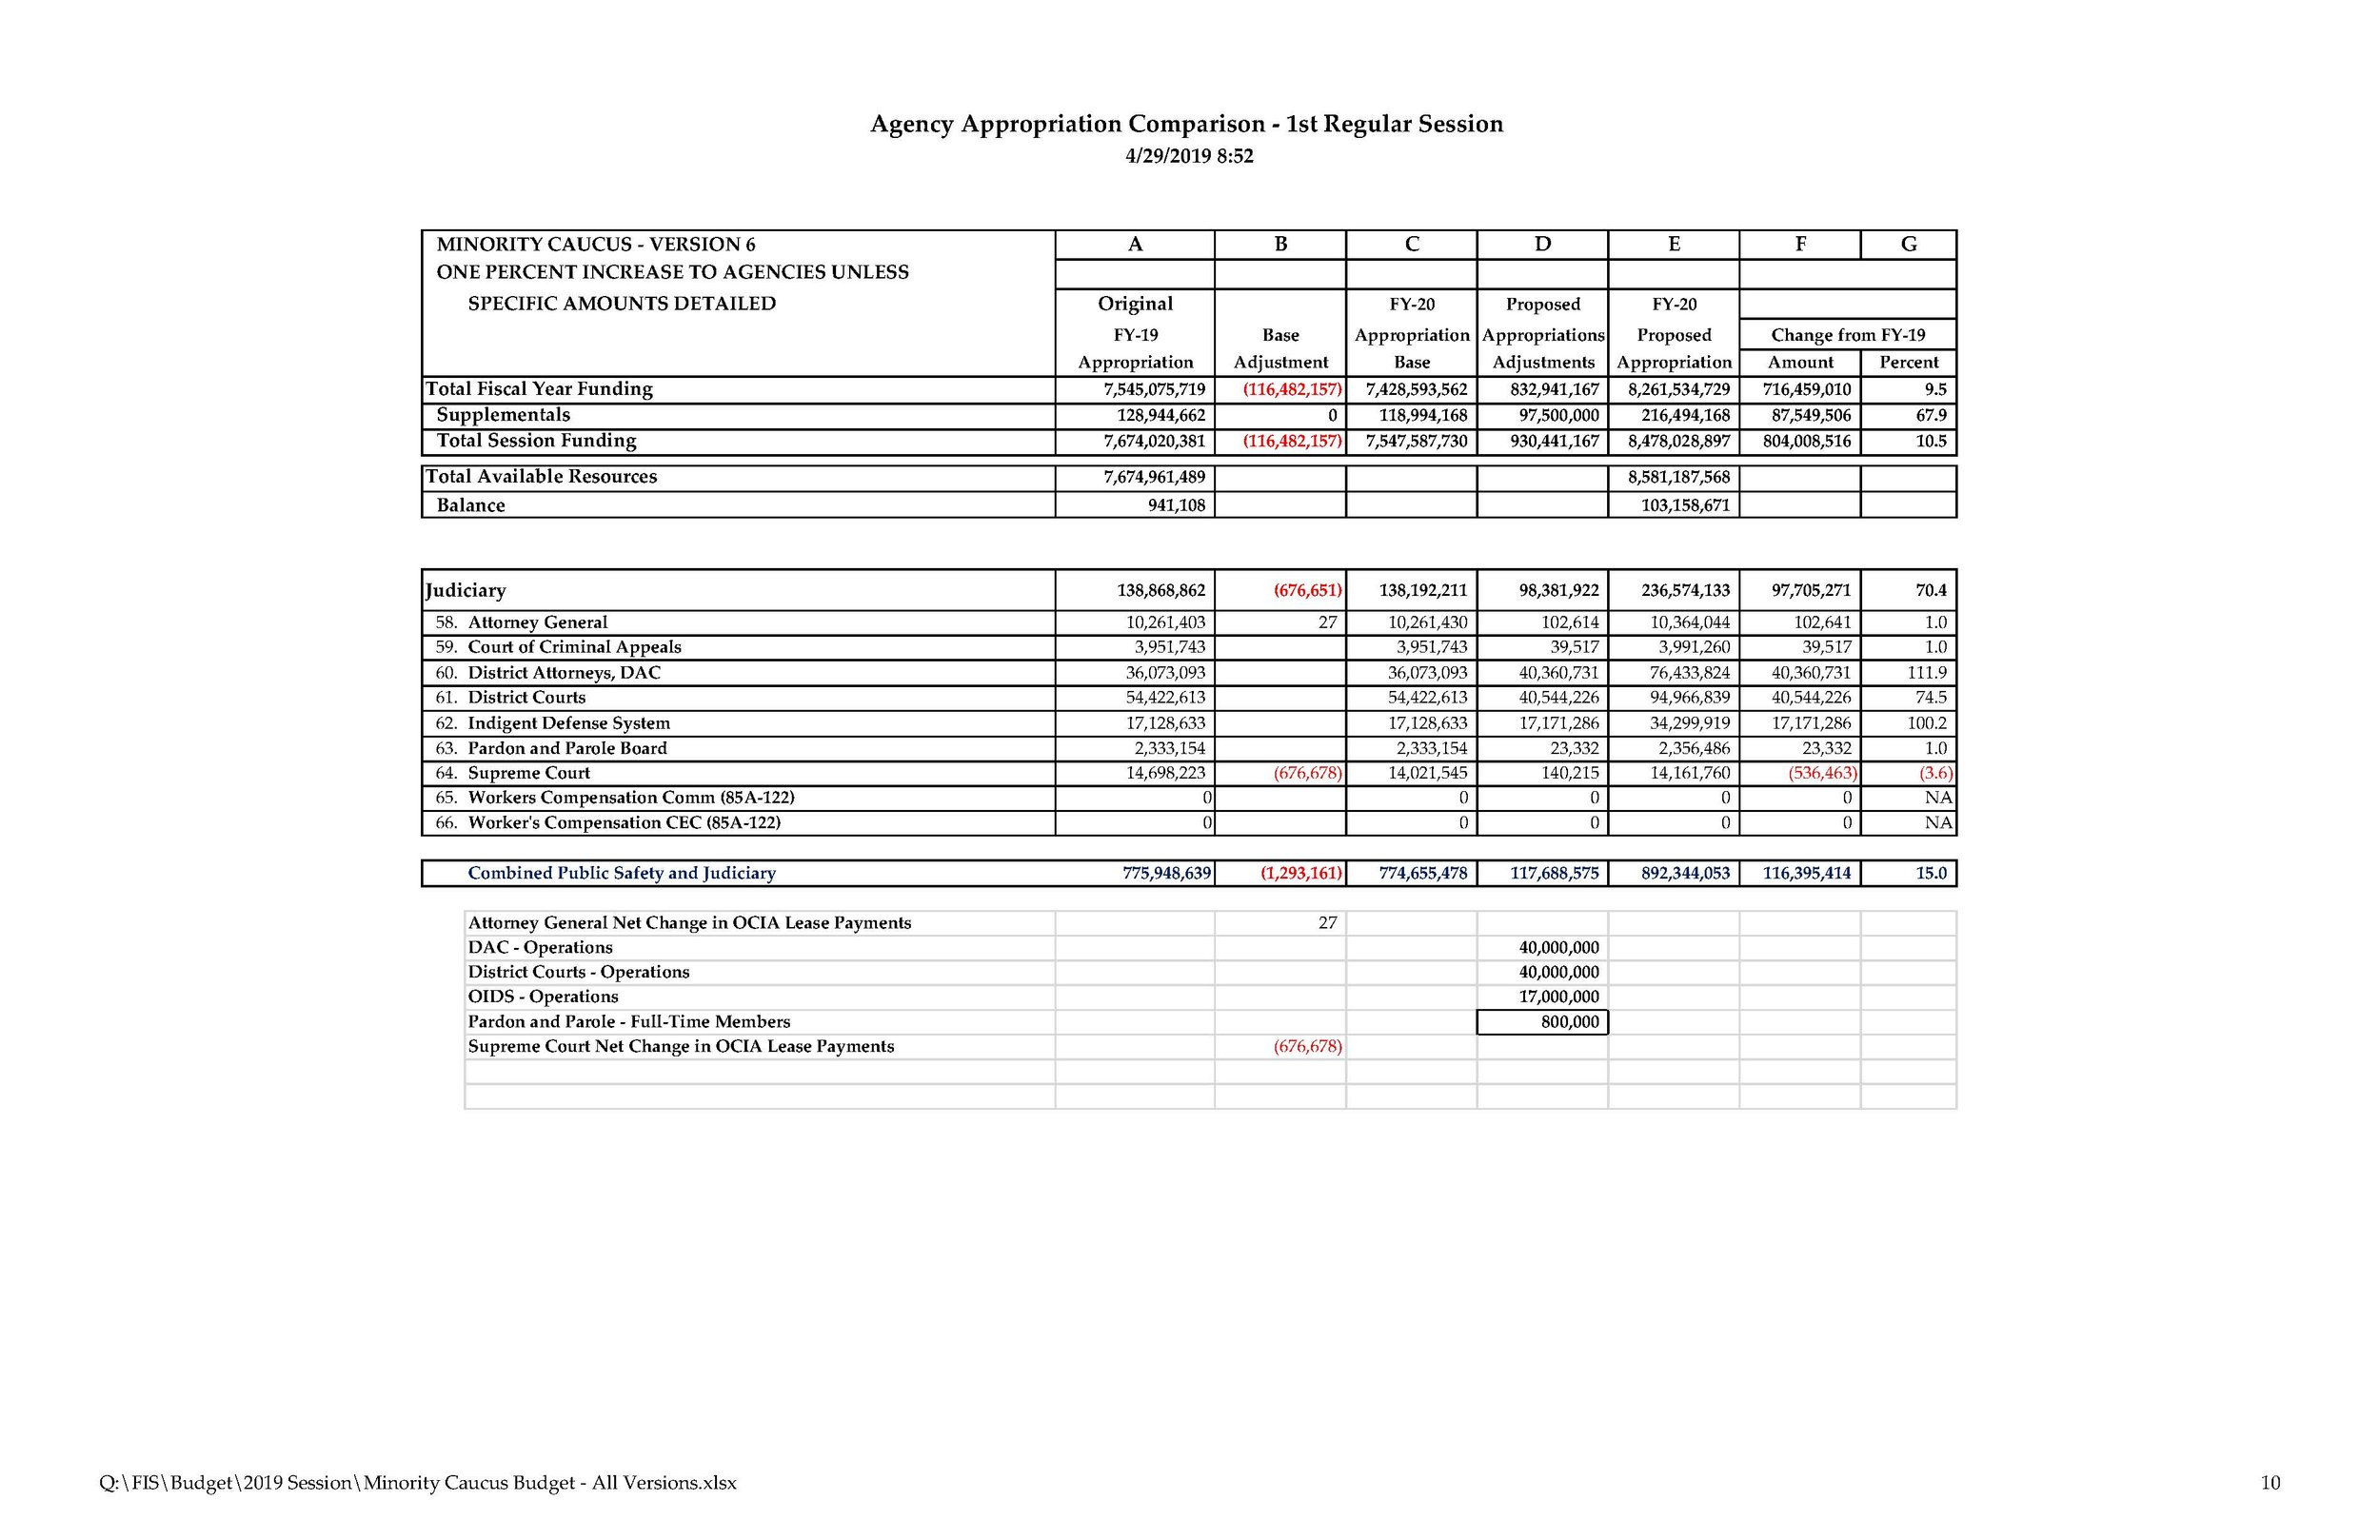 Minority Caucus Budget - All Versions_Page_10.jpg